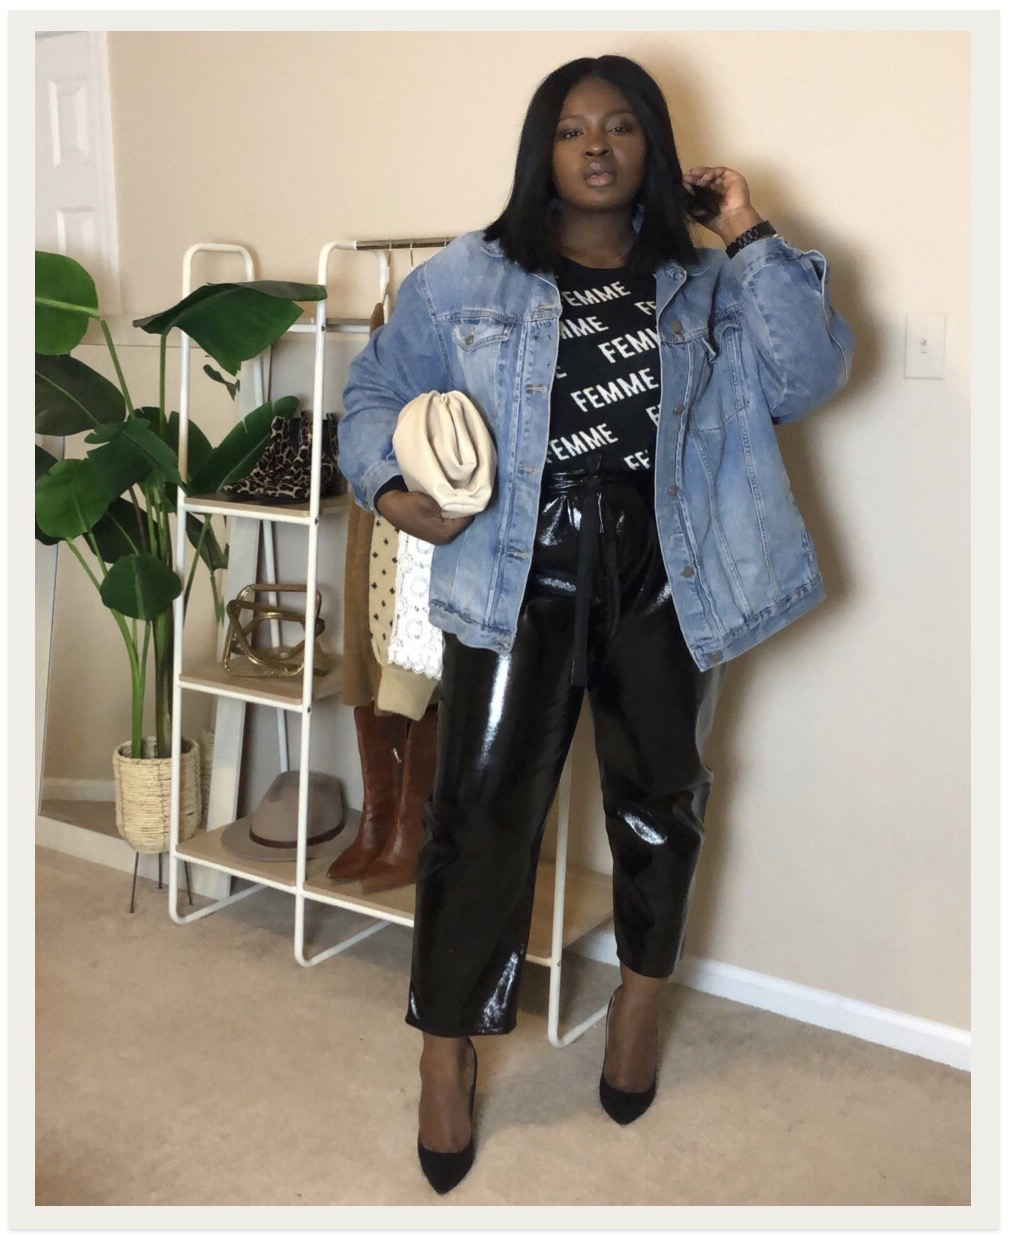 14 day outfit challenge from supplechic a fashion and lifestyle blog based in baltimore